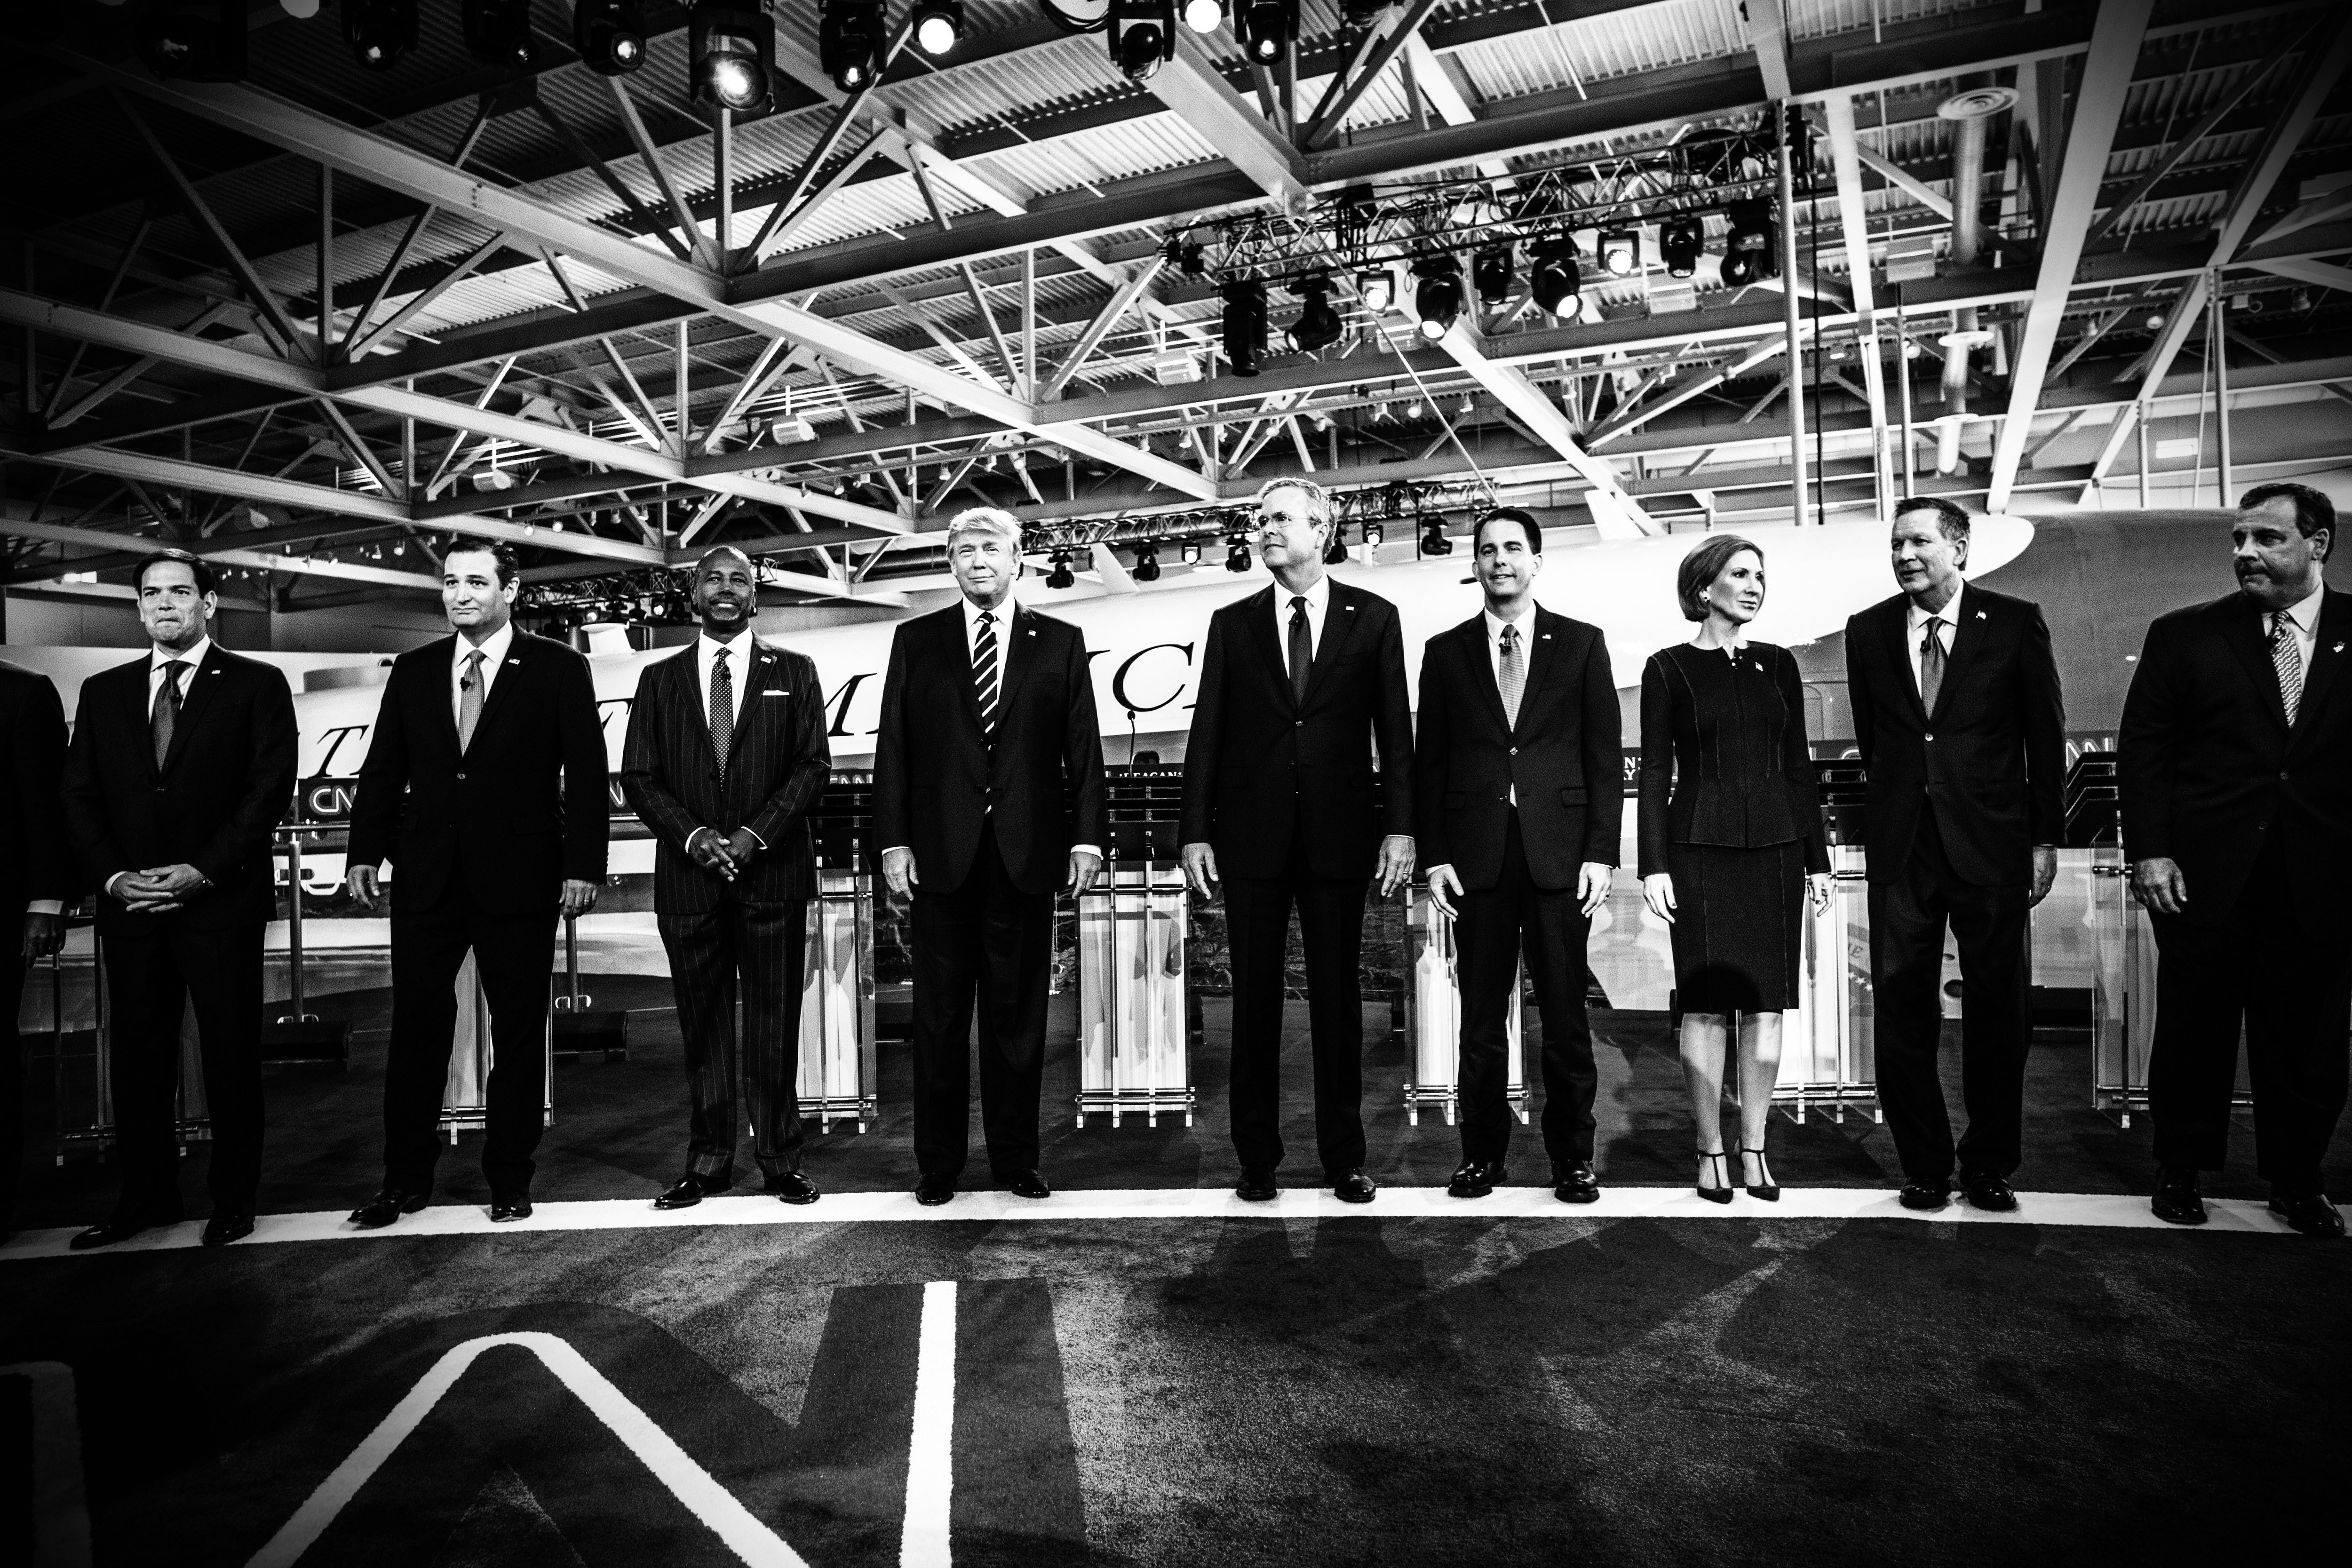 Republican presidential candidates Marco Rubio, Ted Cruz, Ben Carson, Donald Trump, Jeb Bush, Scott Walker, Carly Fiorina, John Kasich and Chris Christie participated in the second Republican presidential debate at the Reagan Library in Simi Valley, Calif., on Sept. 16, 2015.